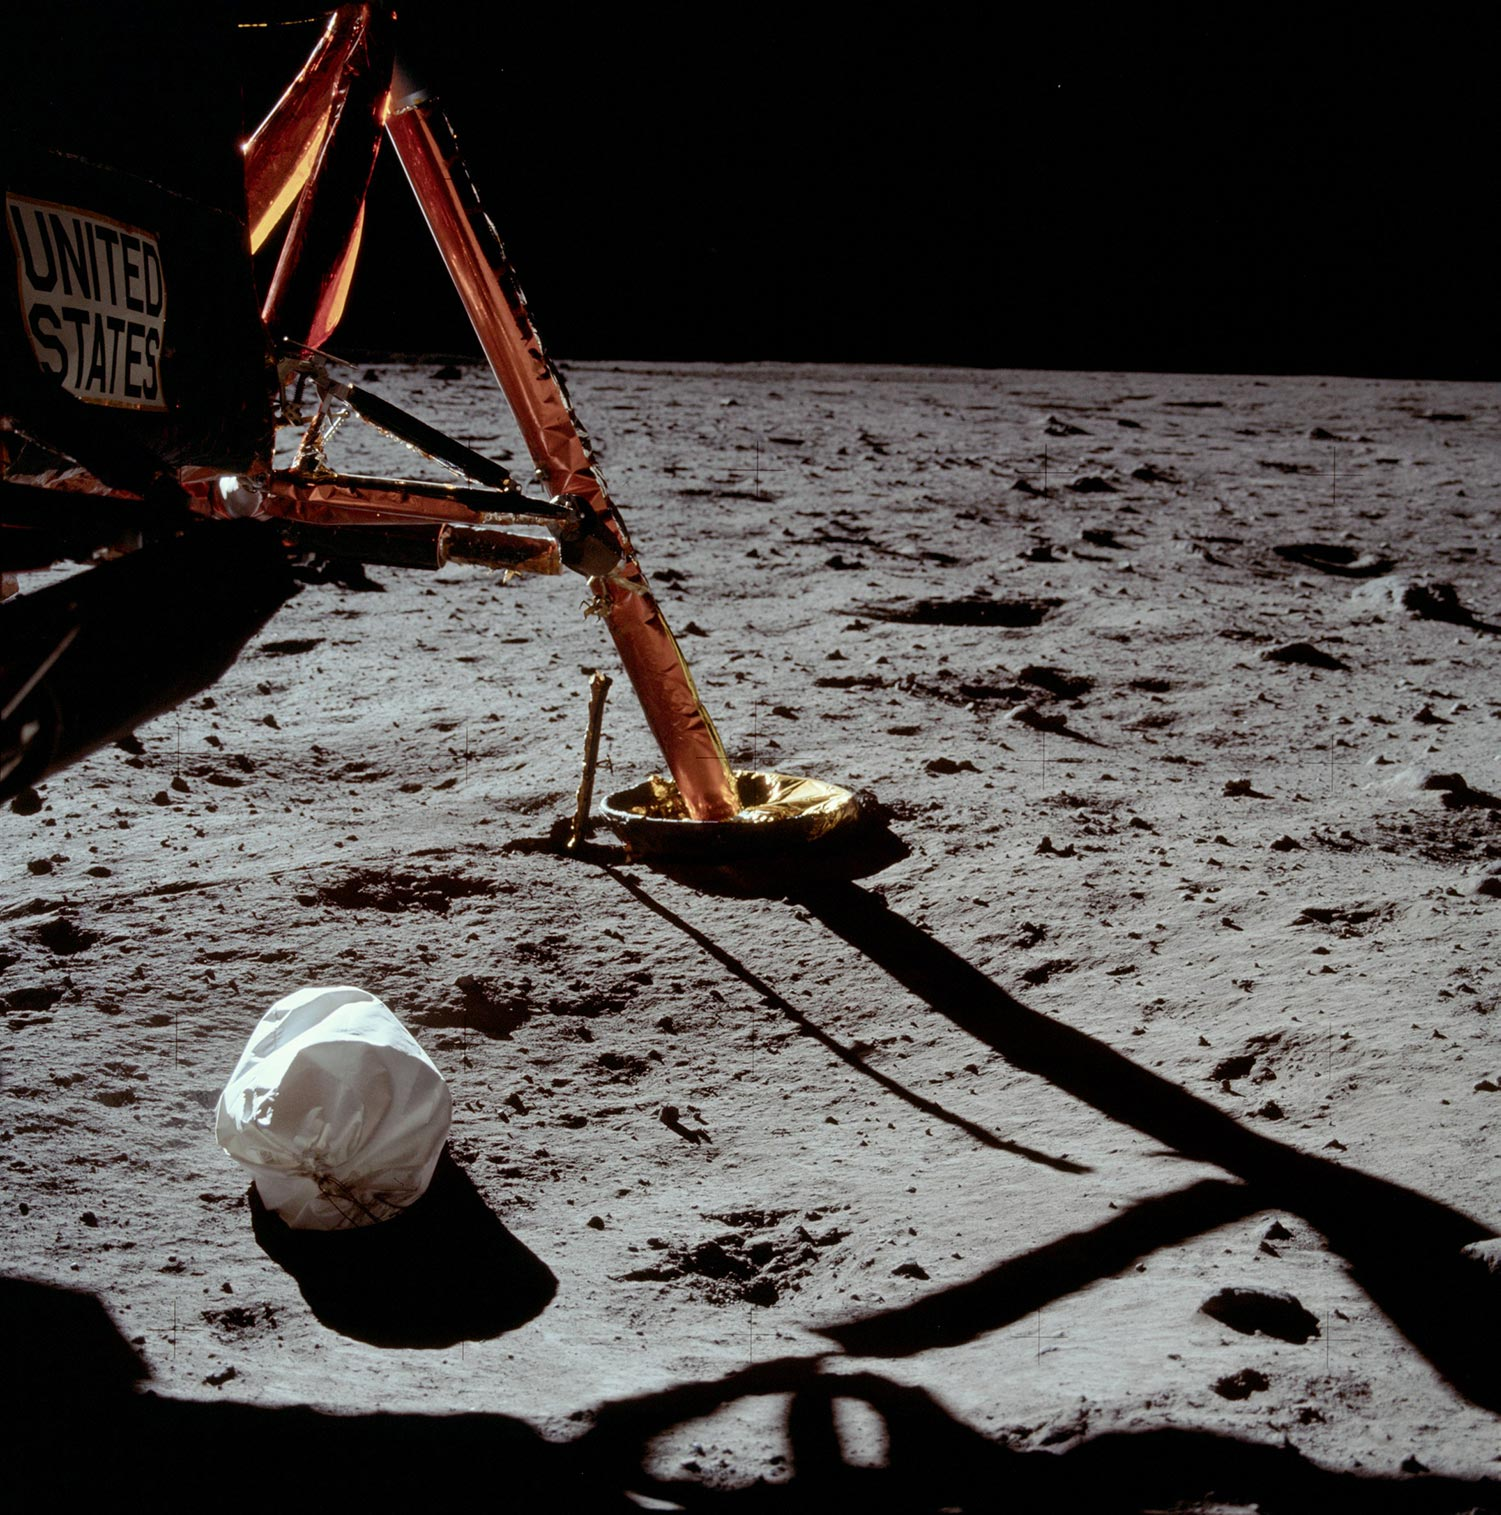 The first photograph captured by Neil Armstrong after landing on the moon. Image courtesy of NASA.